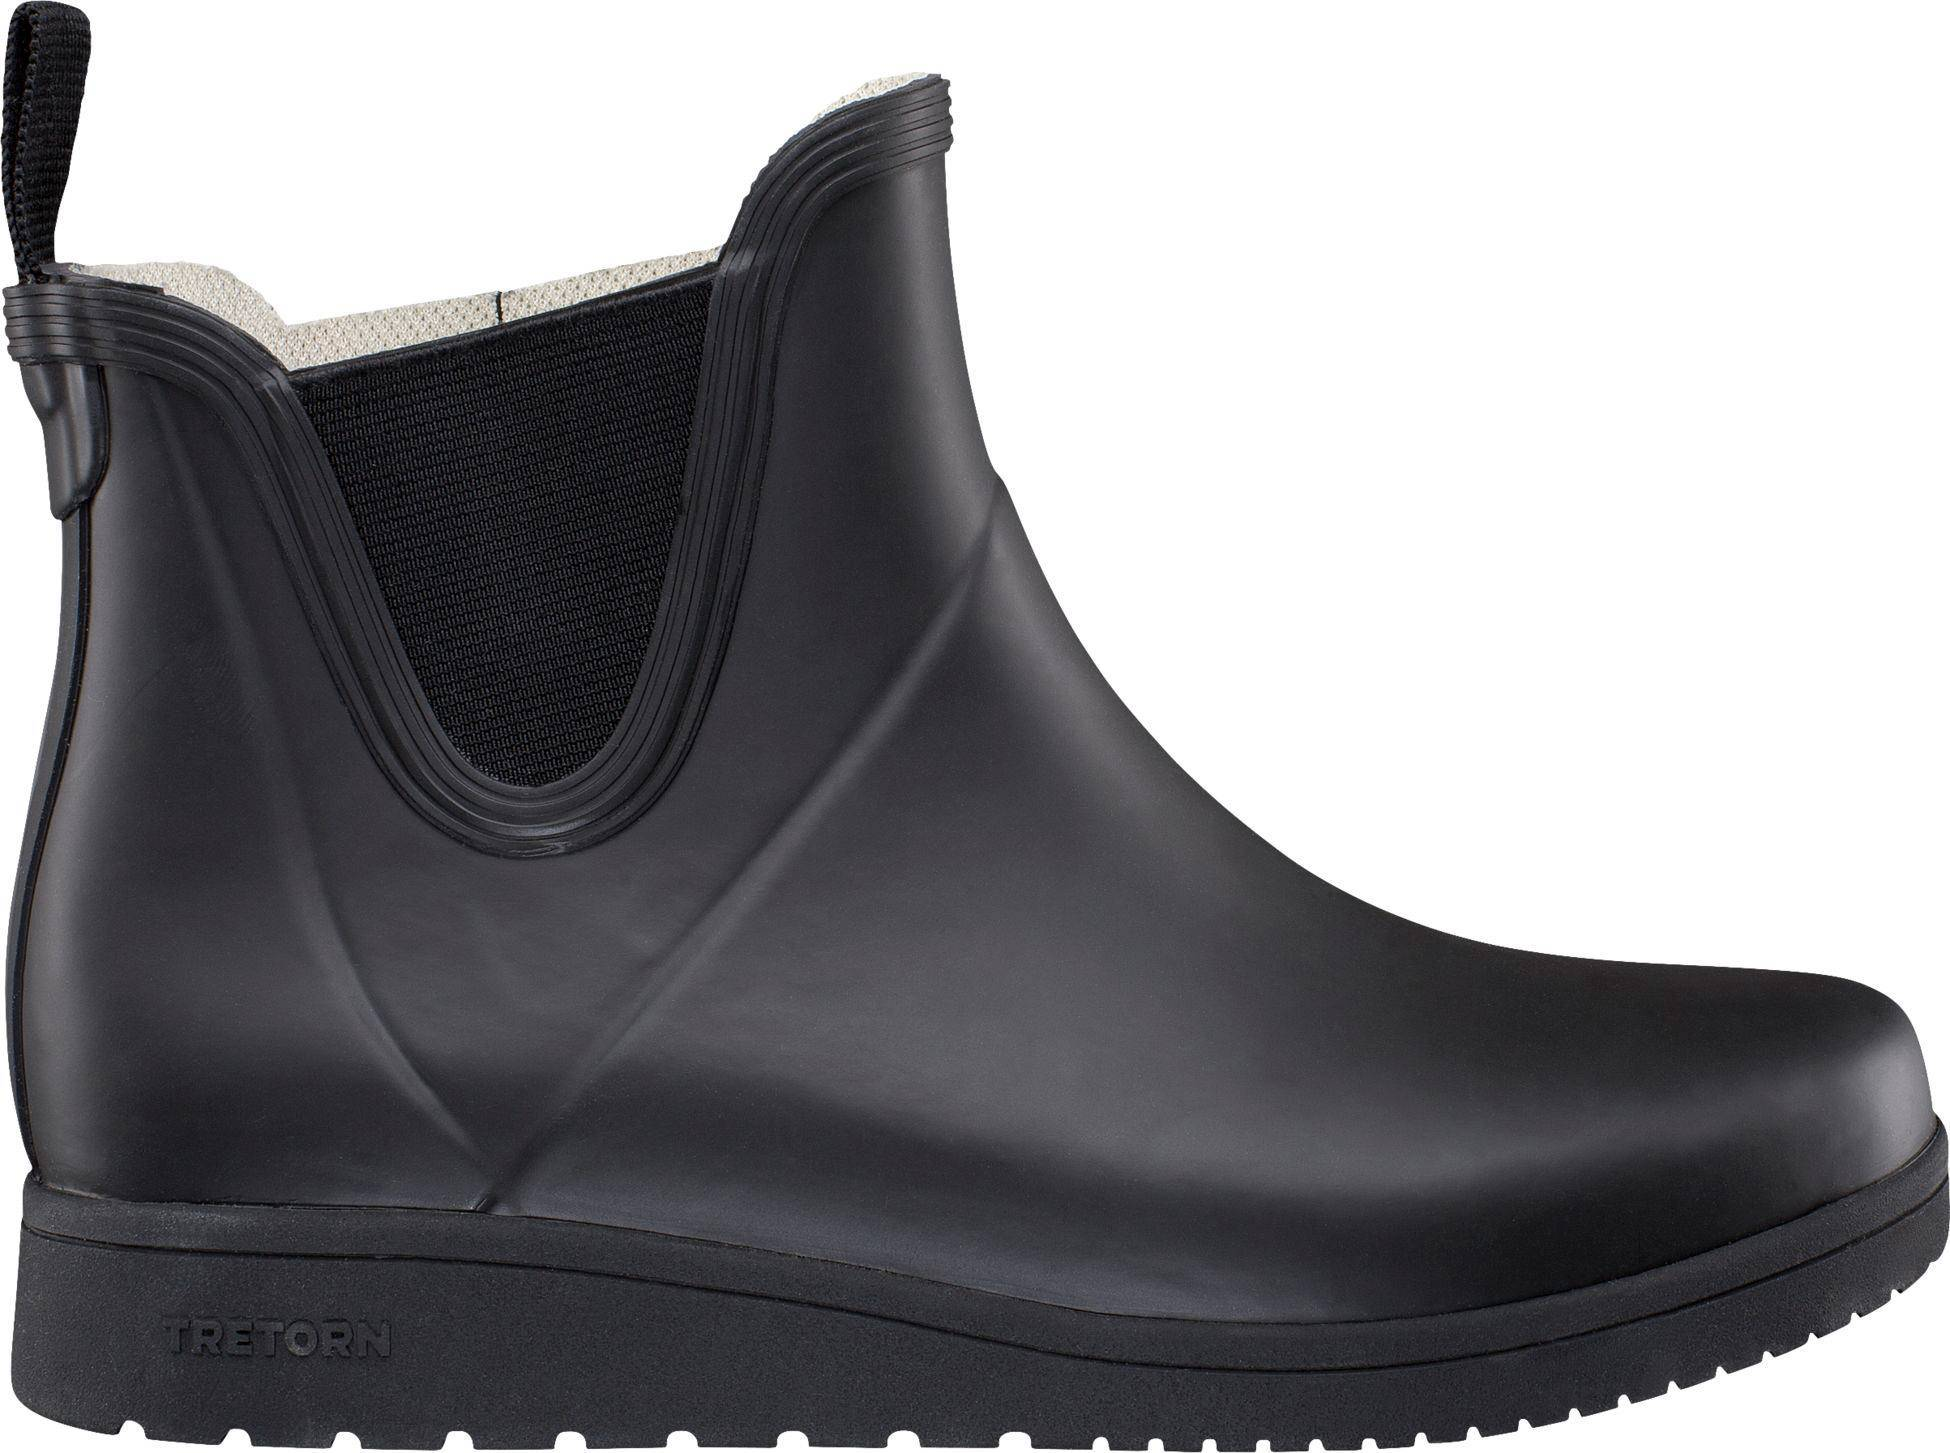 Tretorn Charlie Boot Women